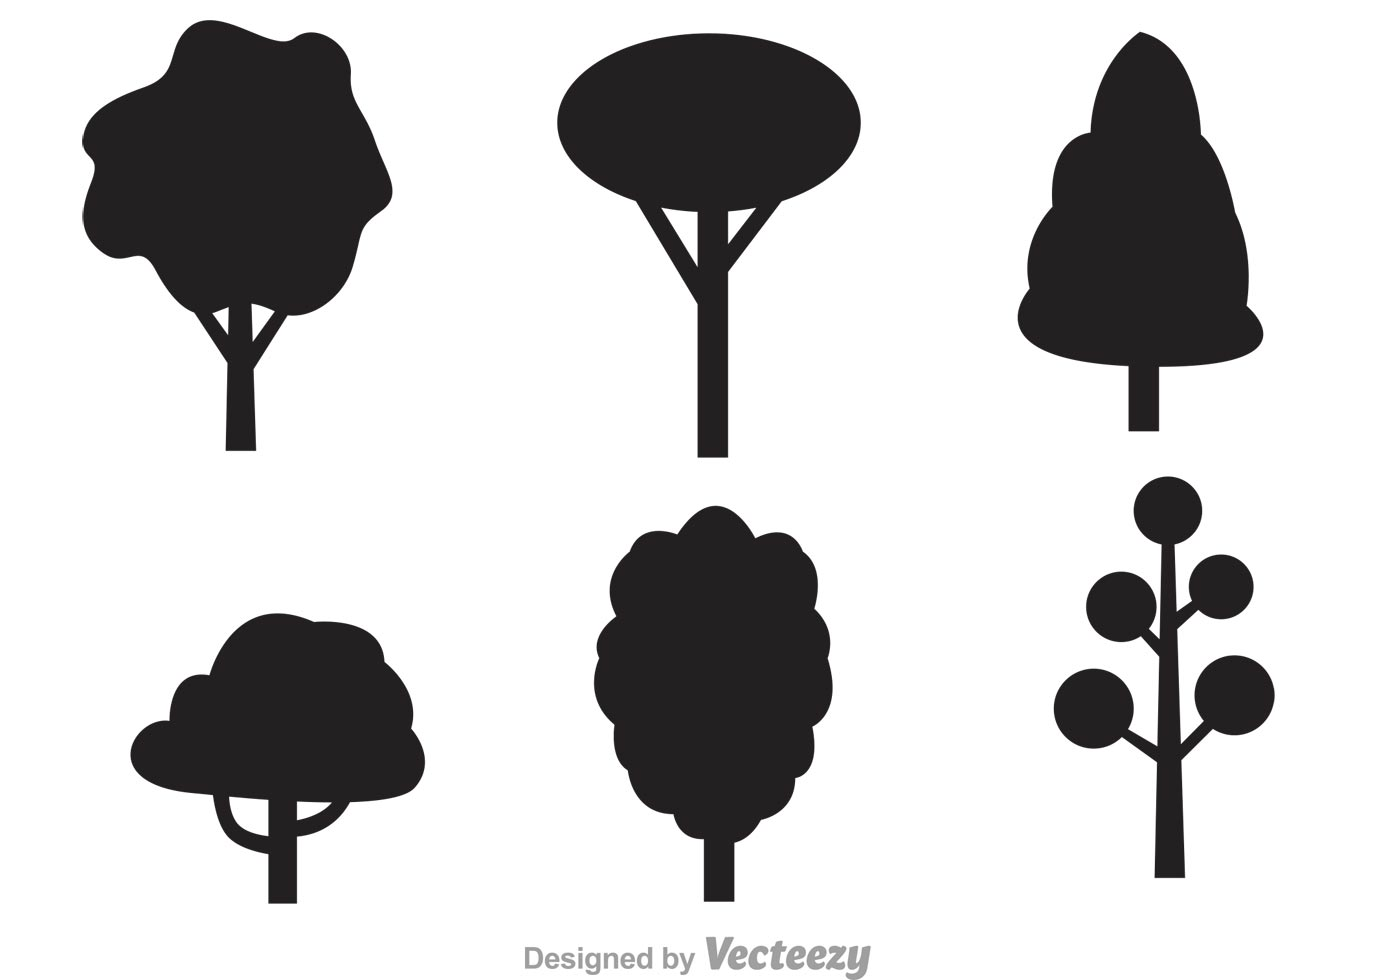 Black Tree Vector Icons - Download Free Vector Art, Stock ...